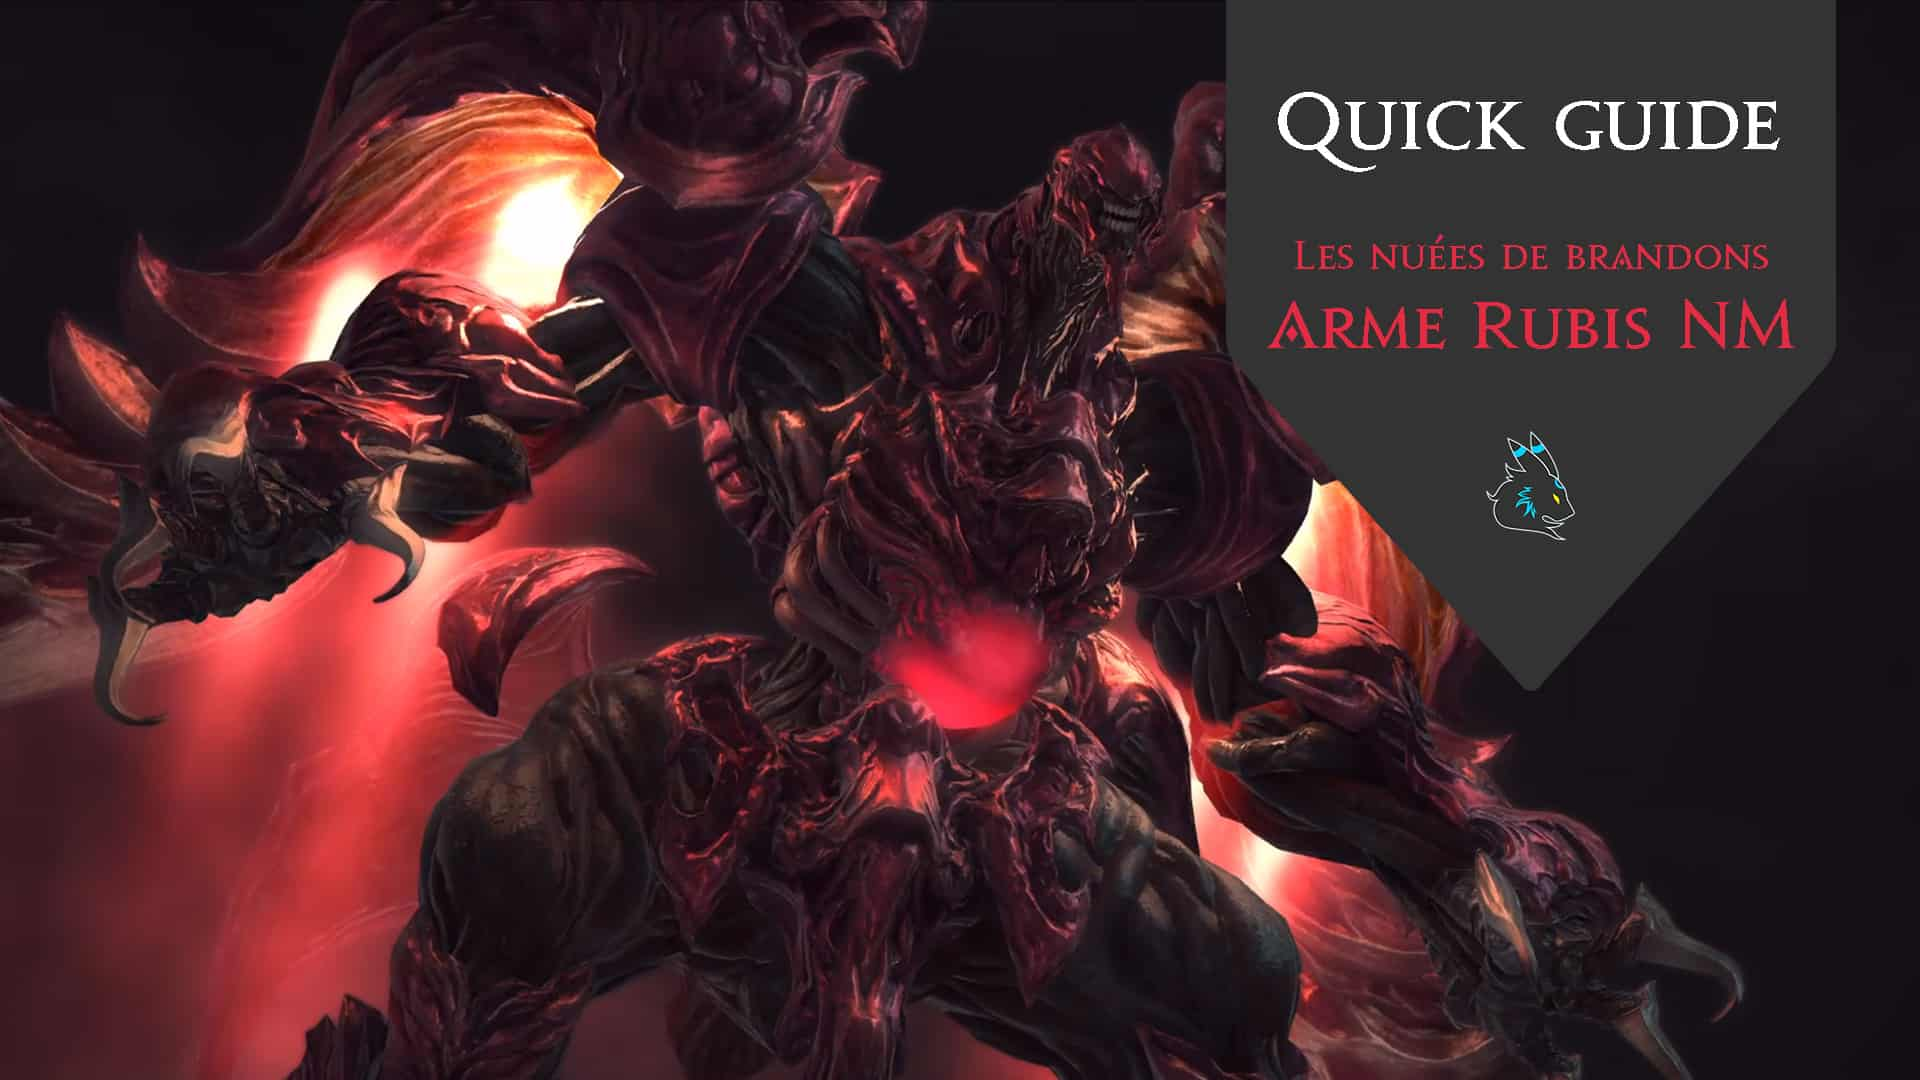 Illustration - Quick guide Arme rubis NM